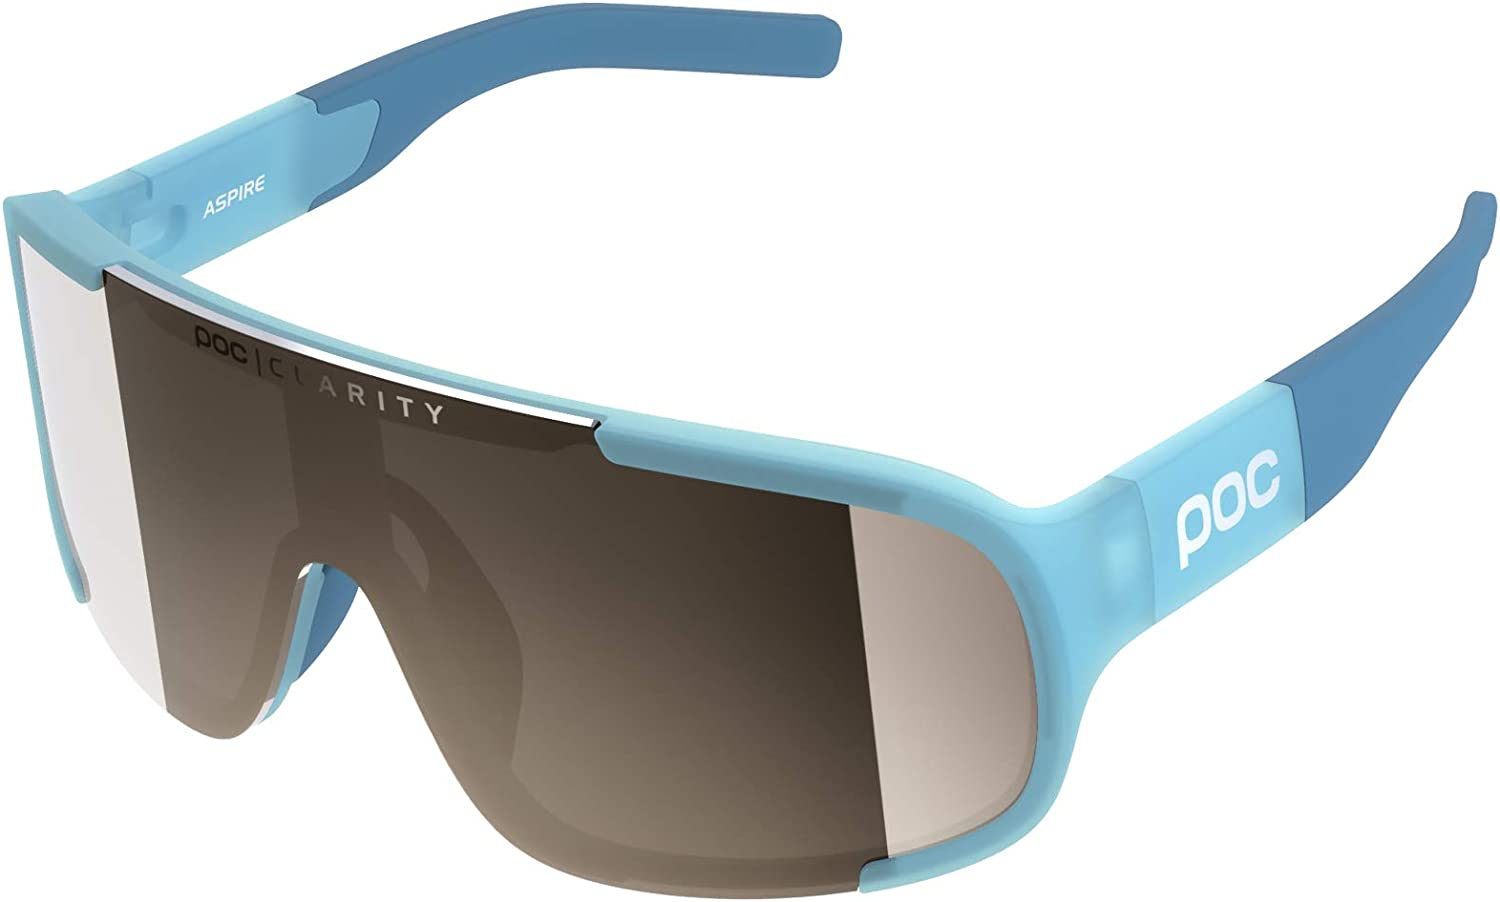 Be super welcome POC Aspire Sunglasses Year-end gift